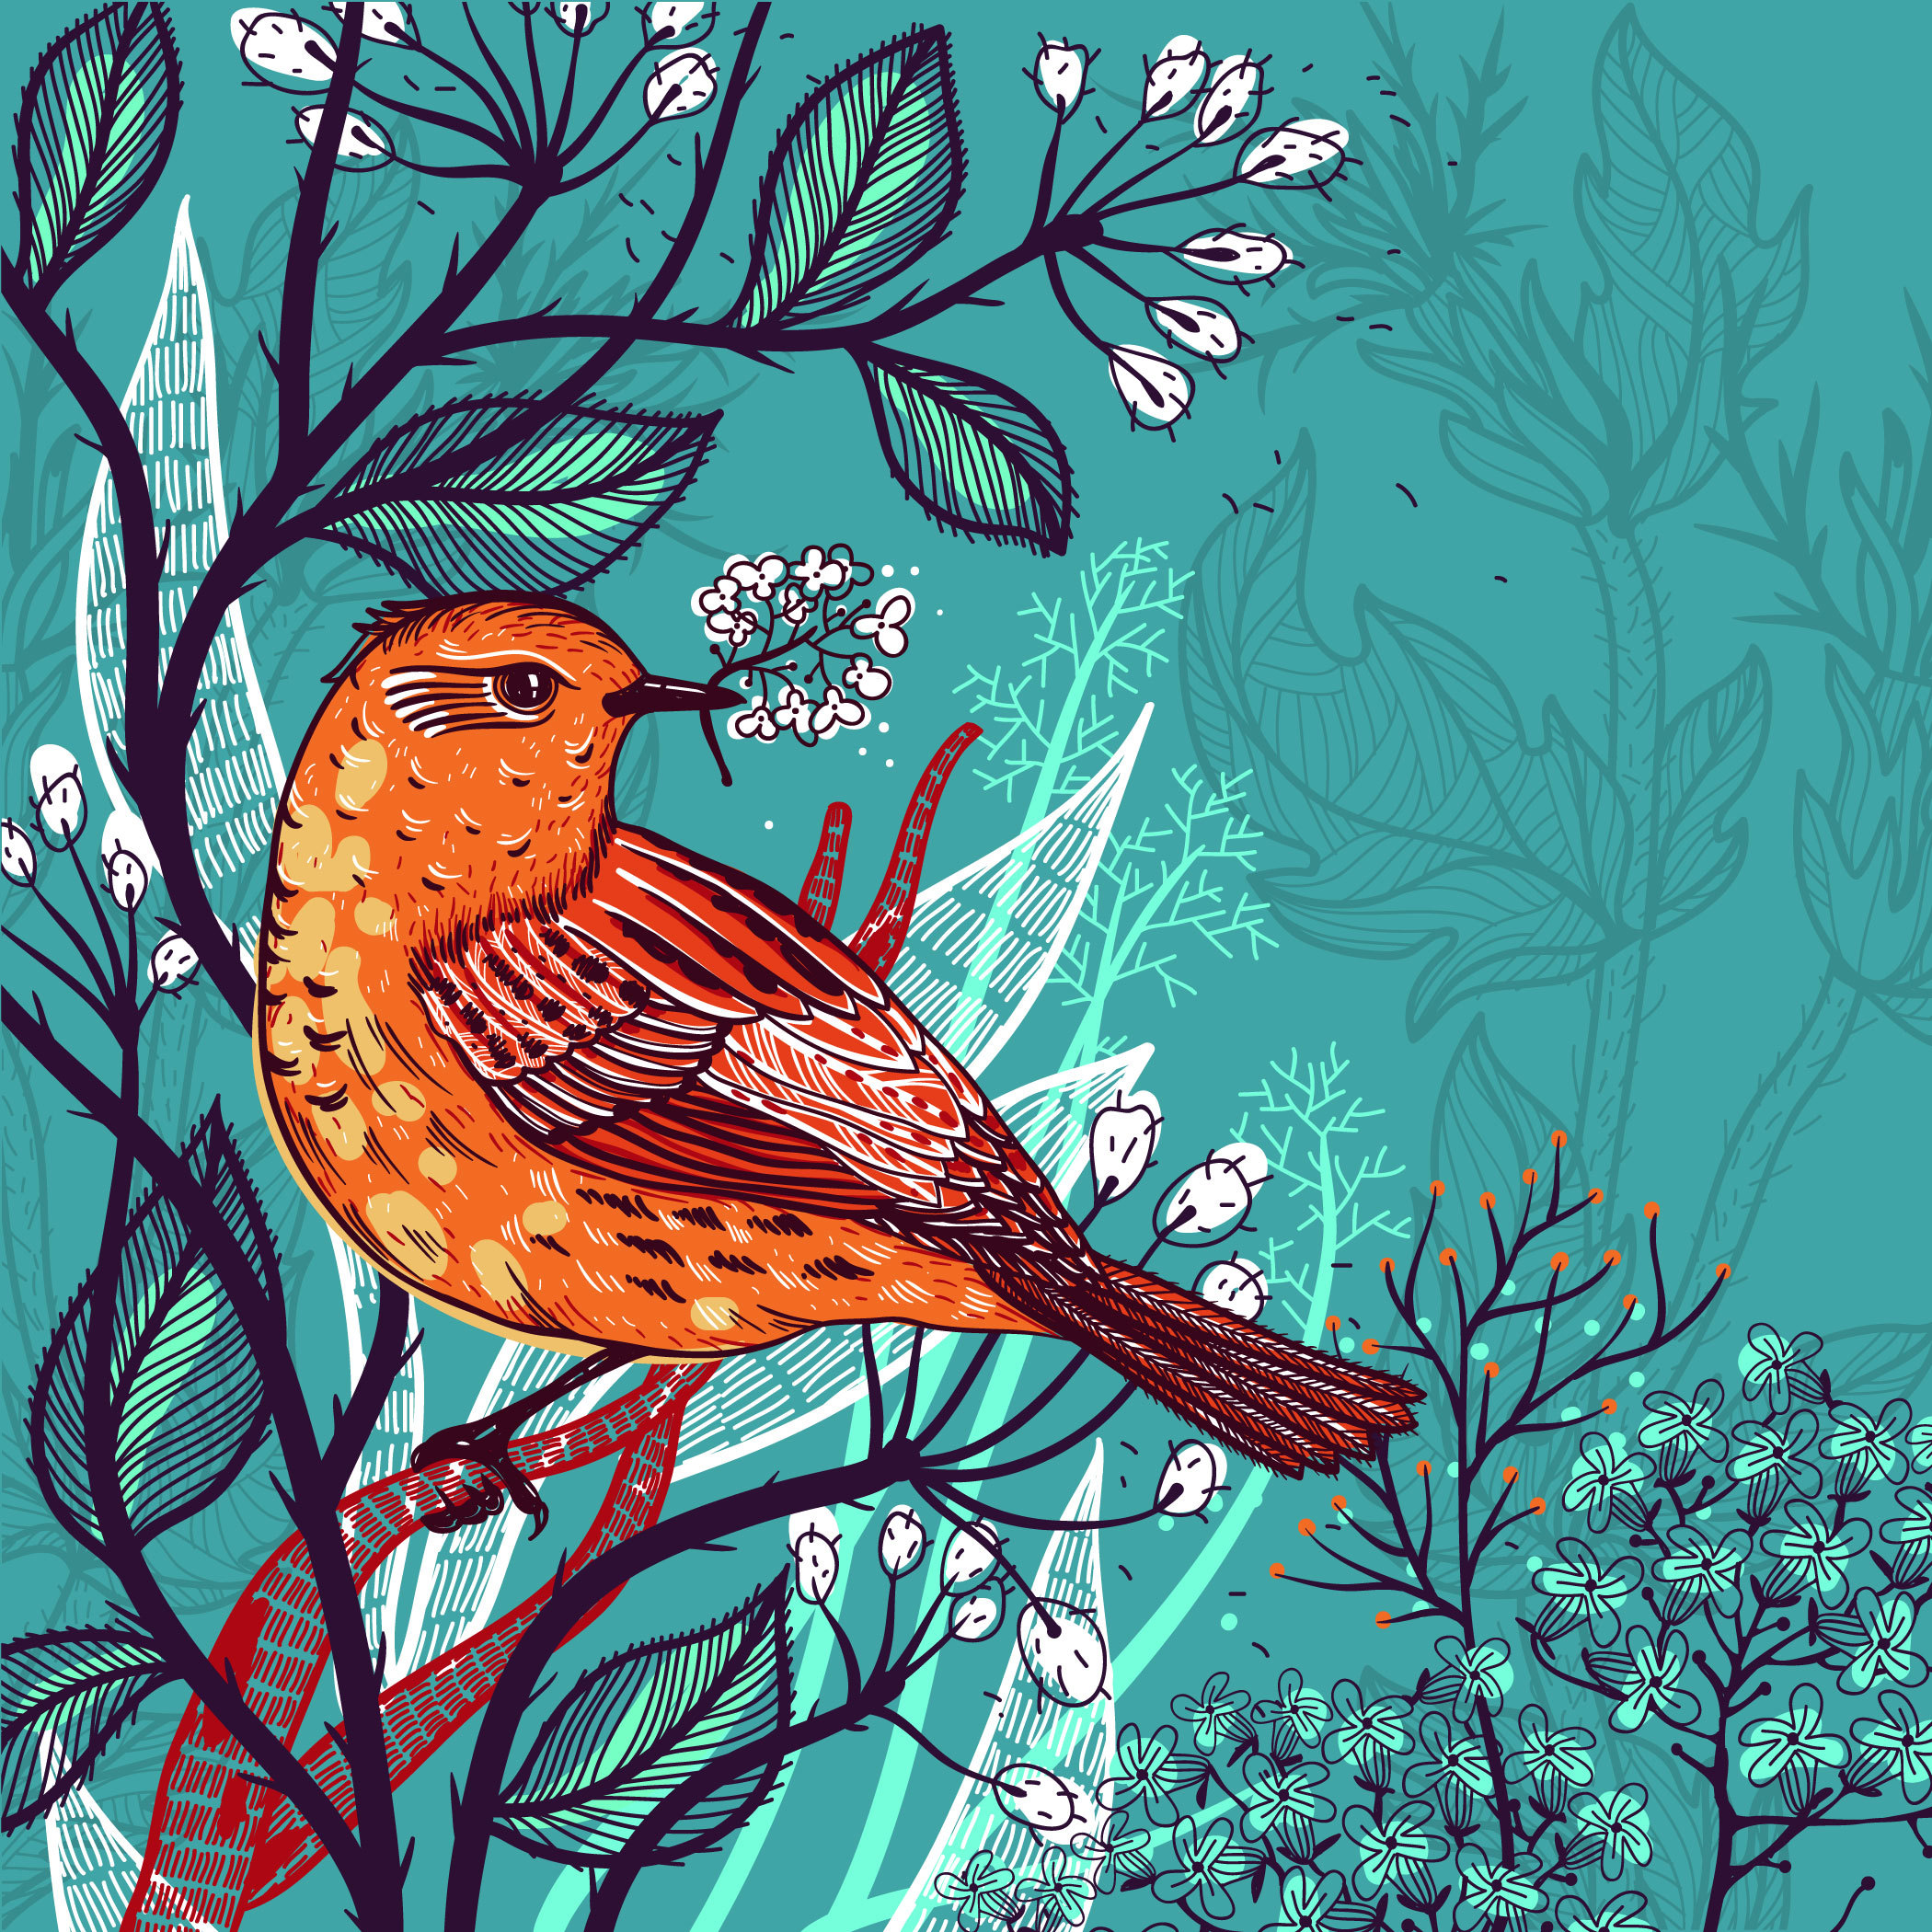 An illustration of an orange bird over a teal and white background.